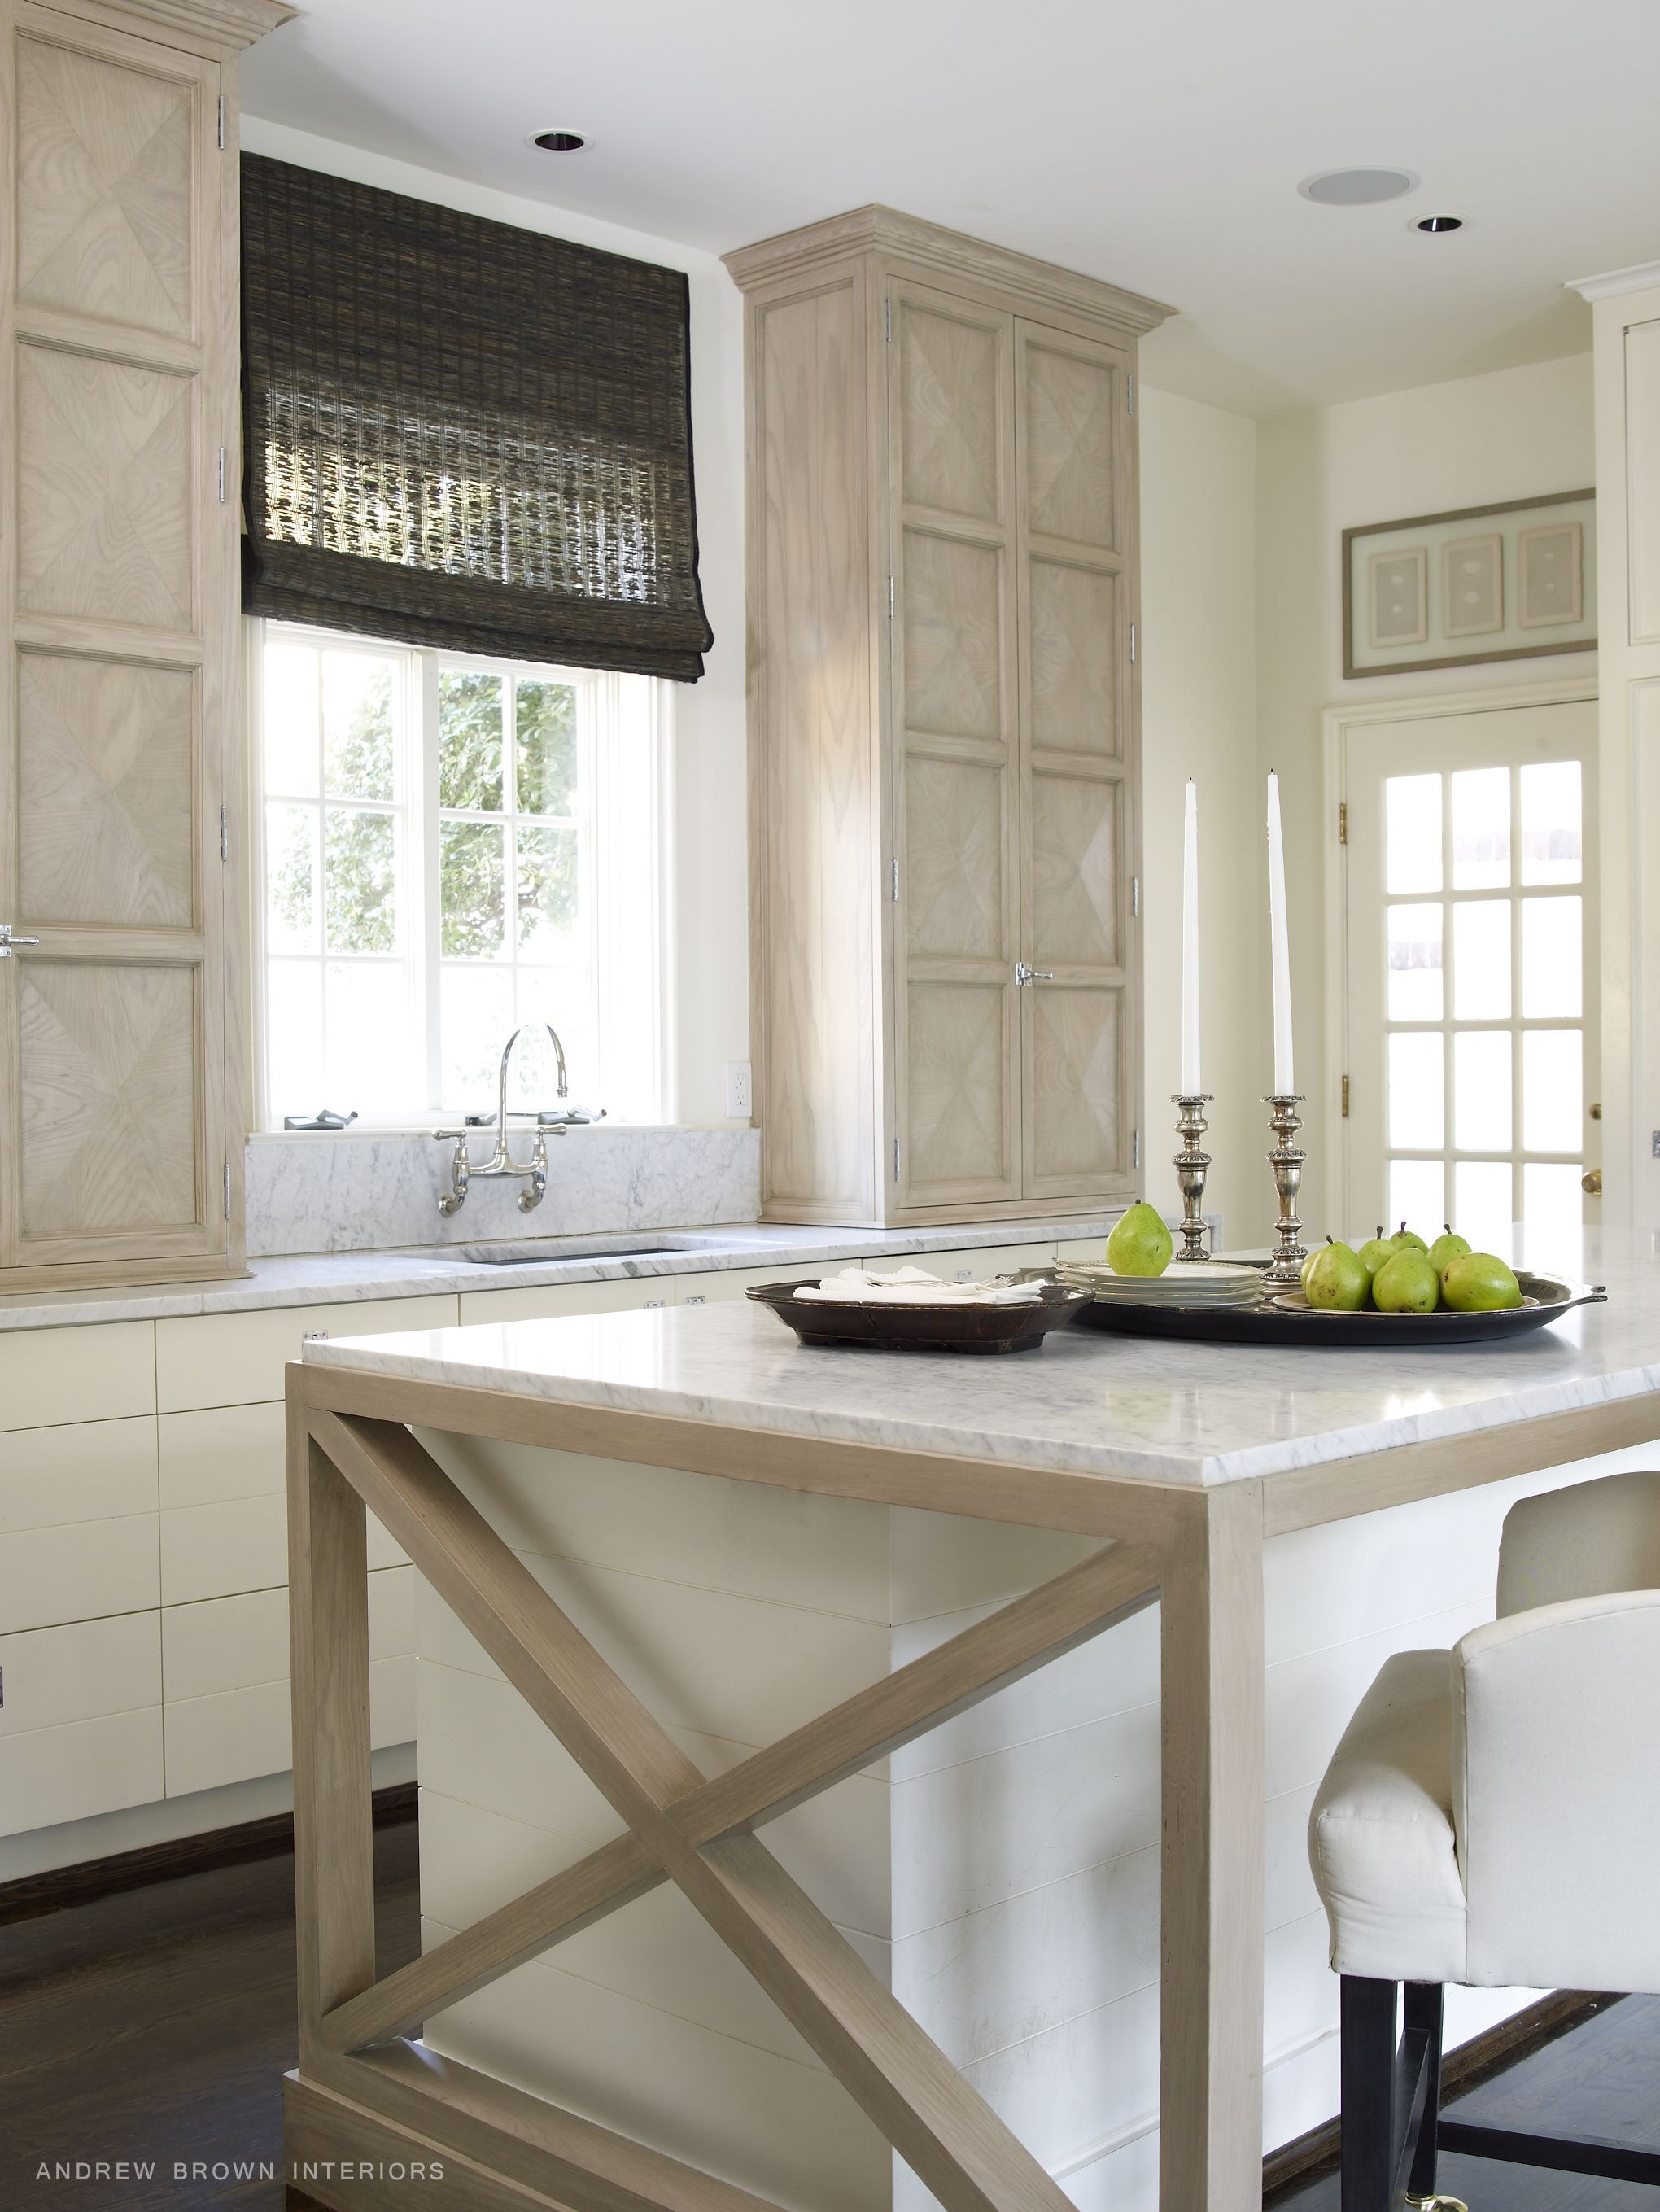 237 best Kitchens images on Pinterest   Architects, Architecture and ...